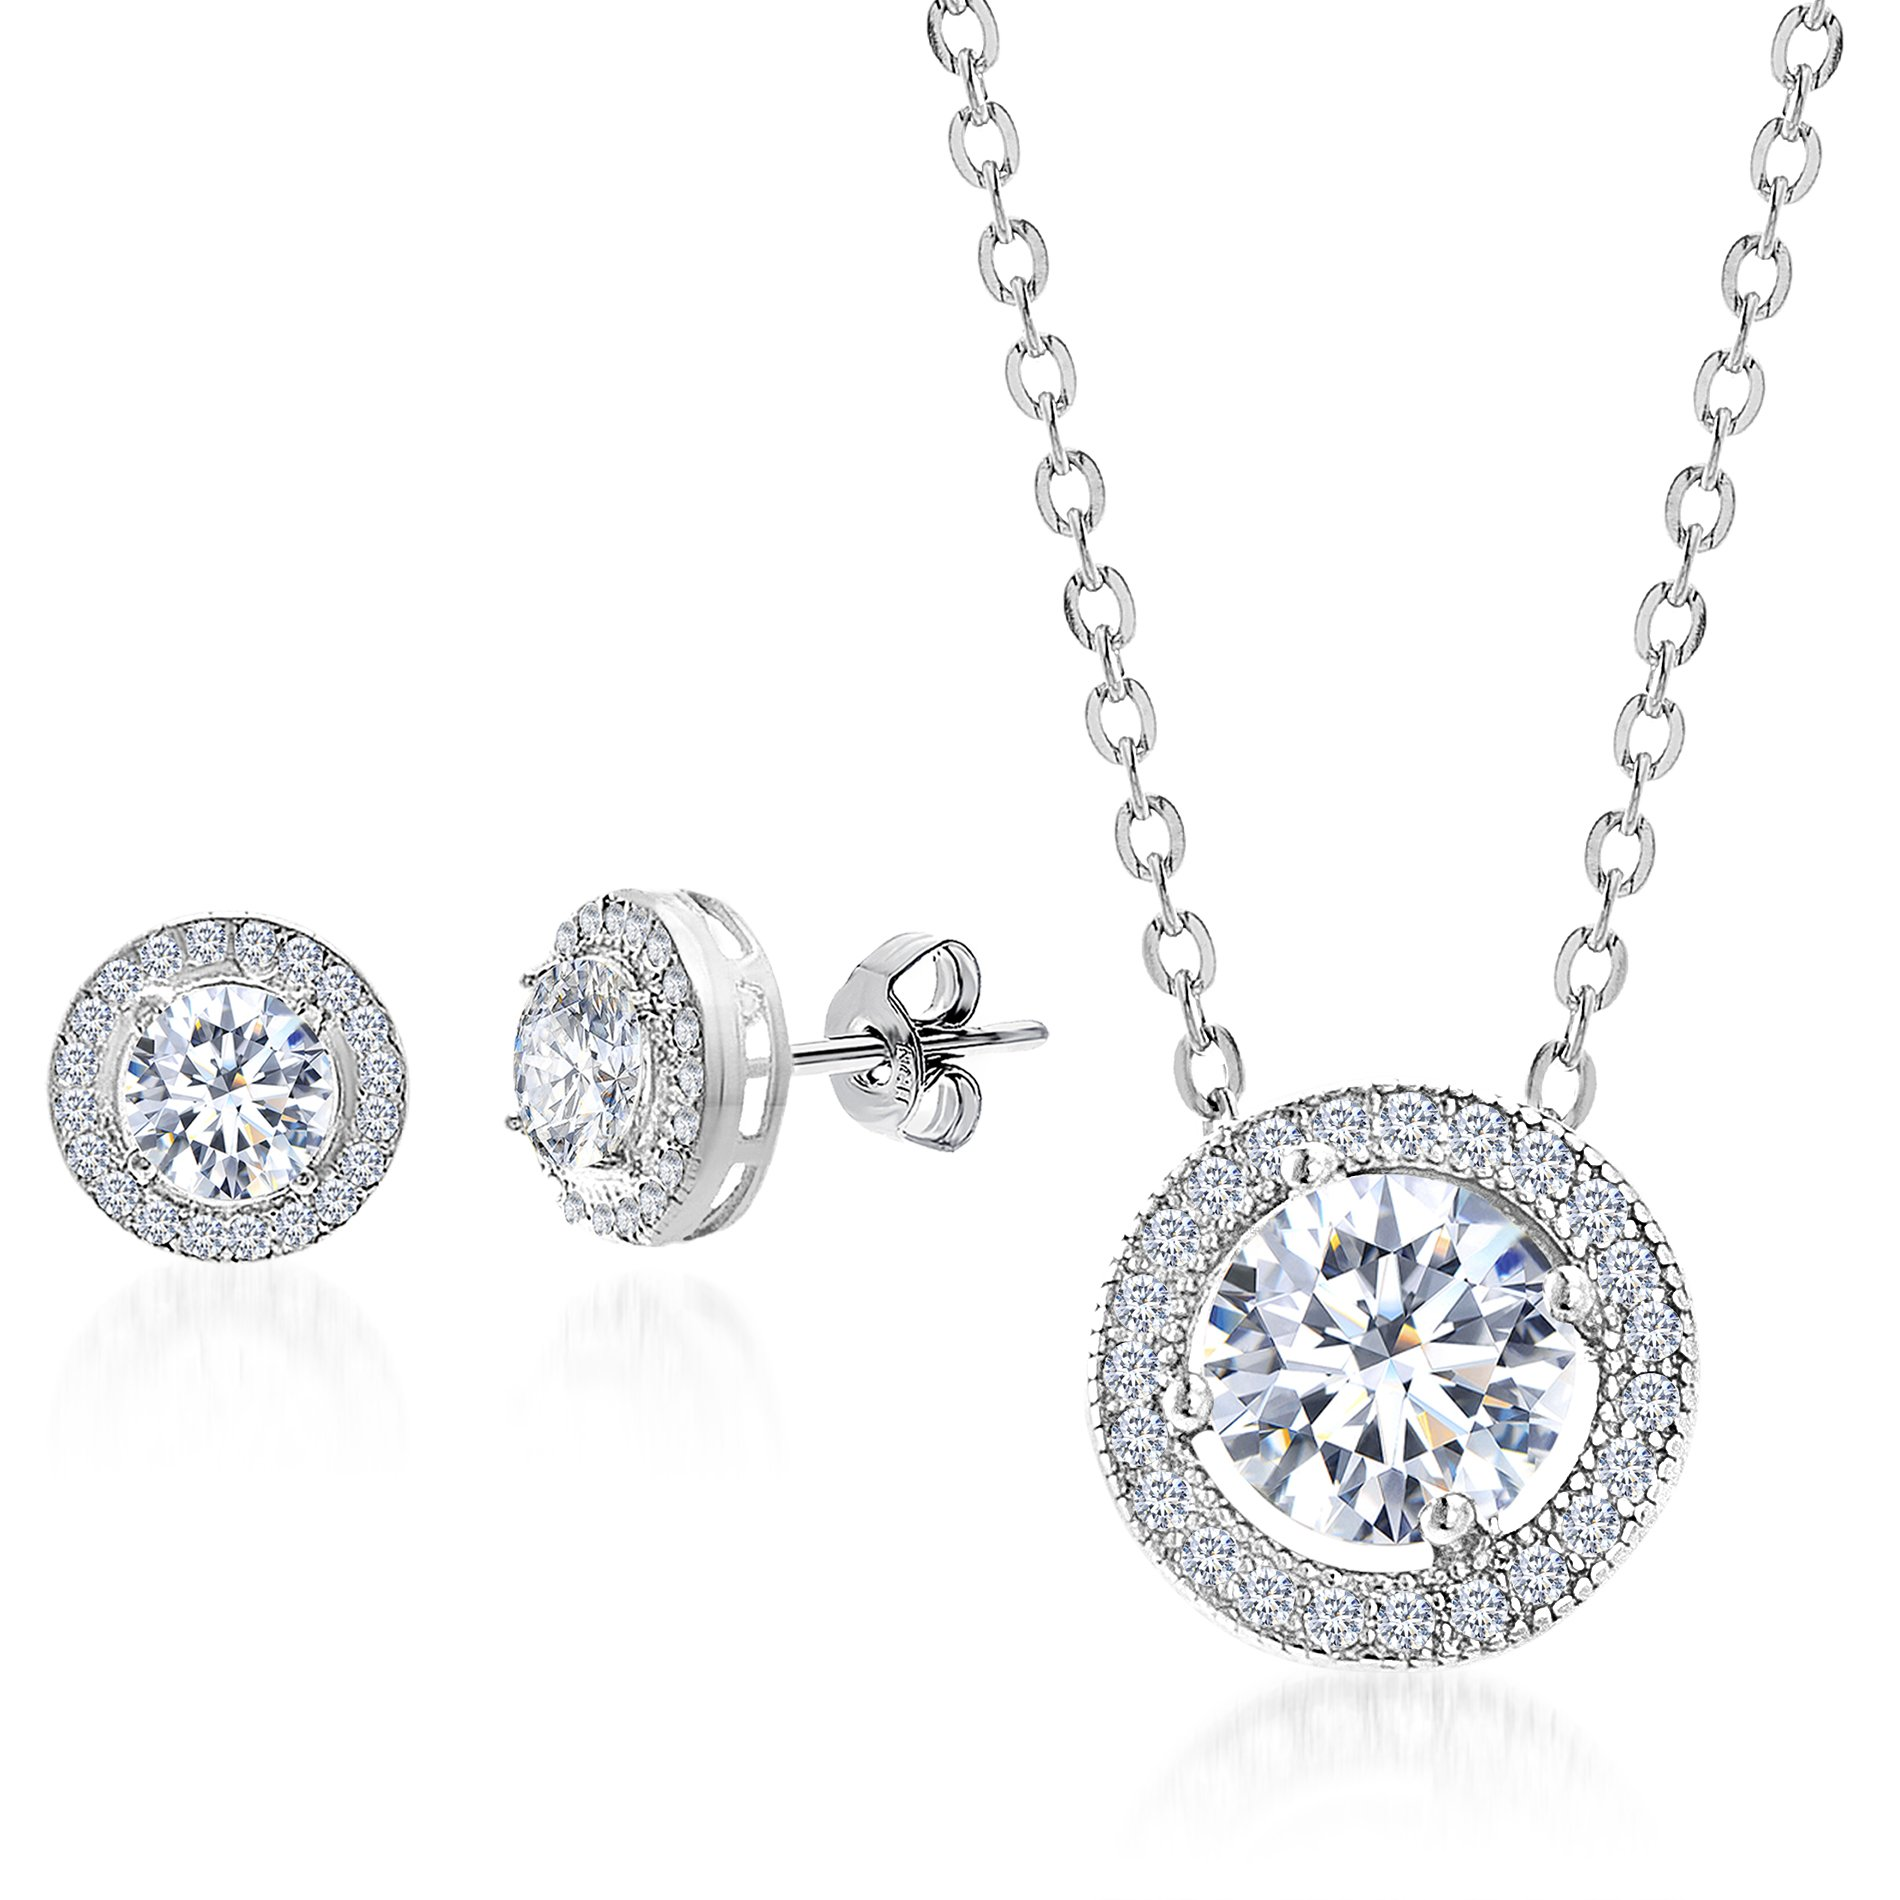 Mia Sarine Round Cubic Zirconia Halo Earring and Pendant Set in Rhodium over Sterling Silver